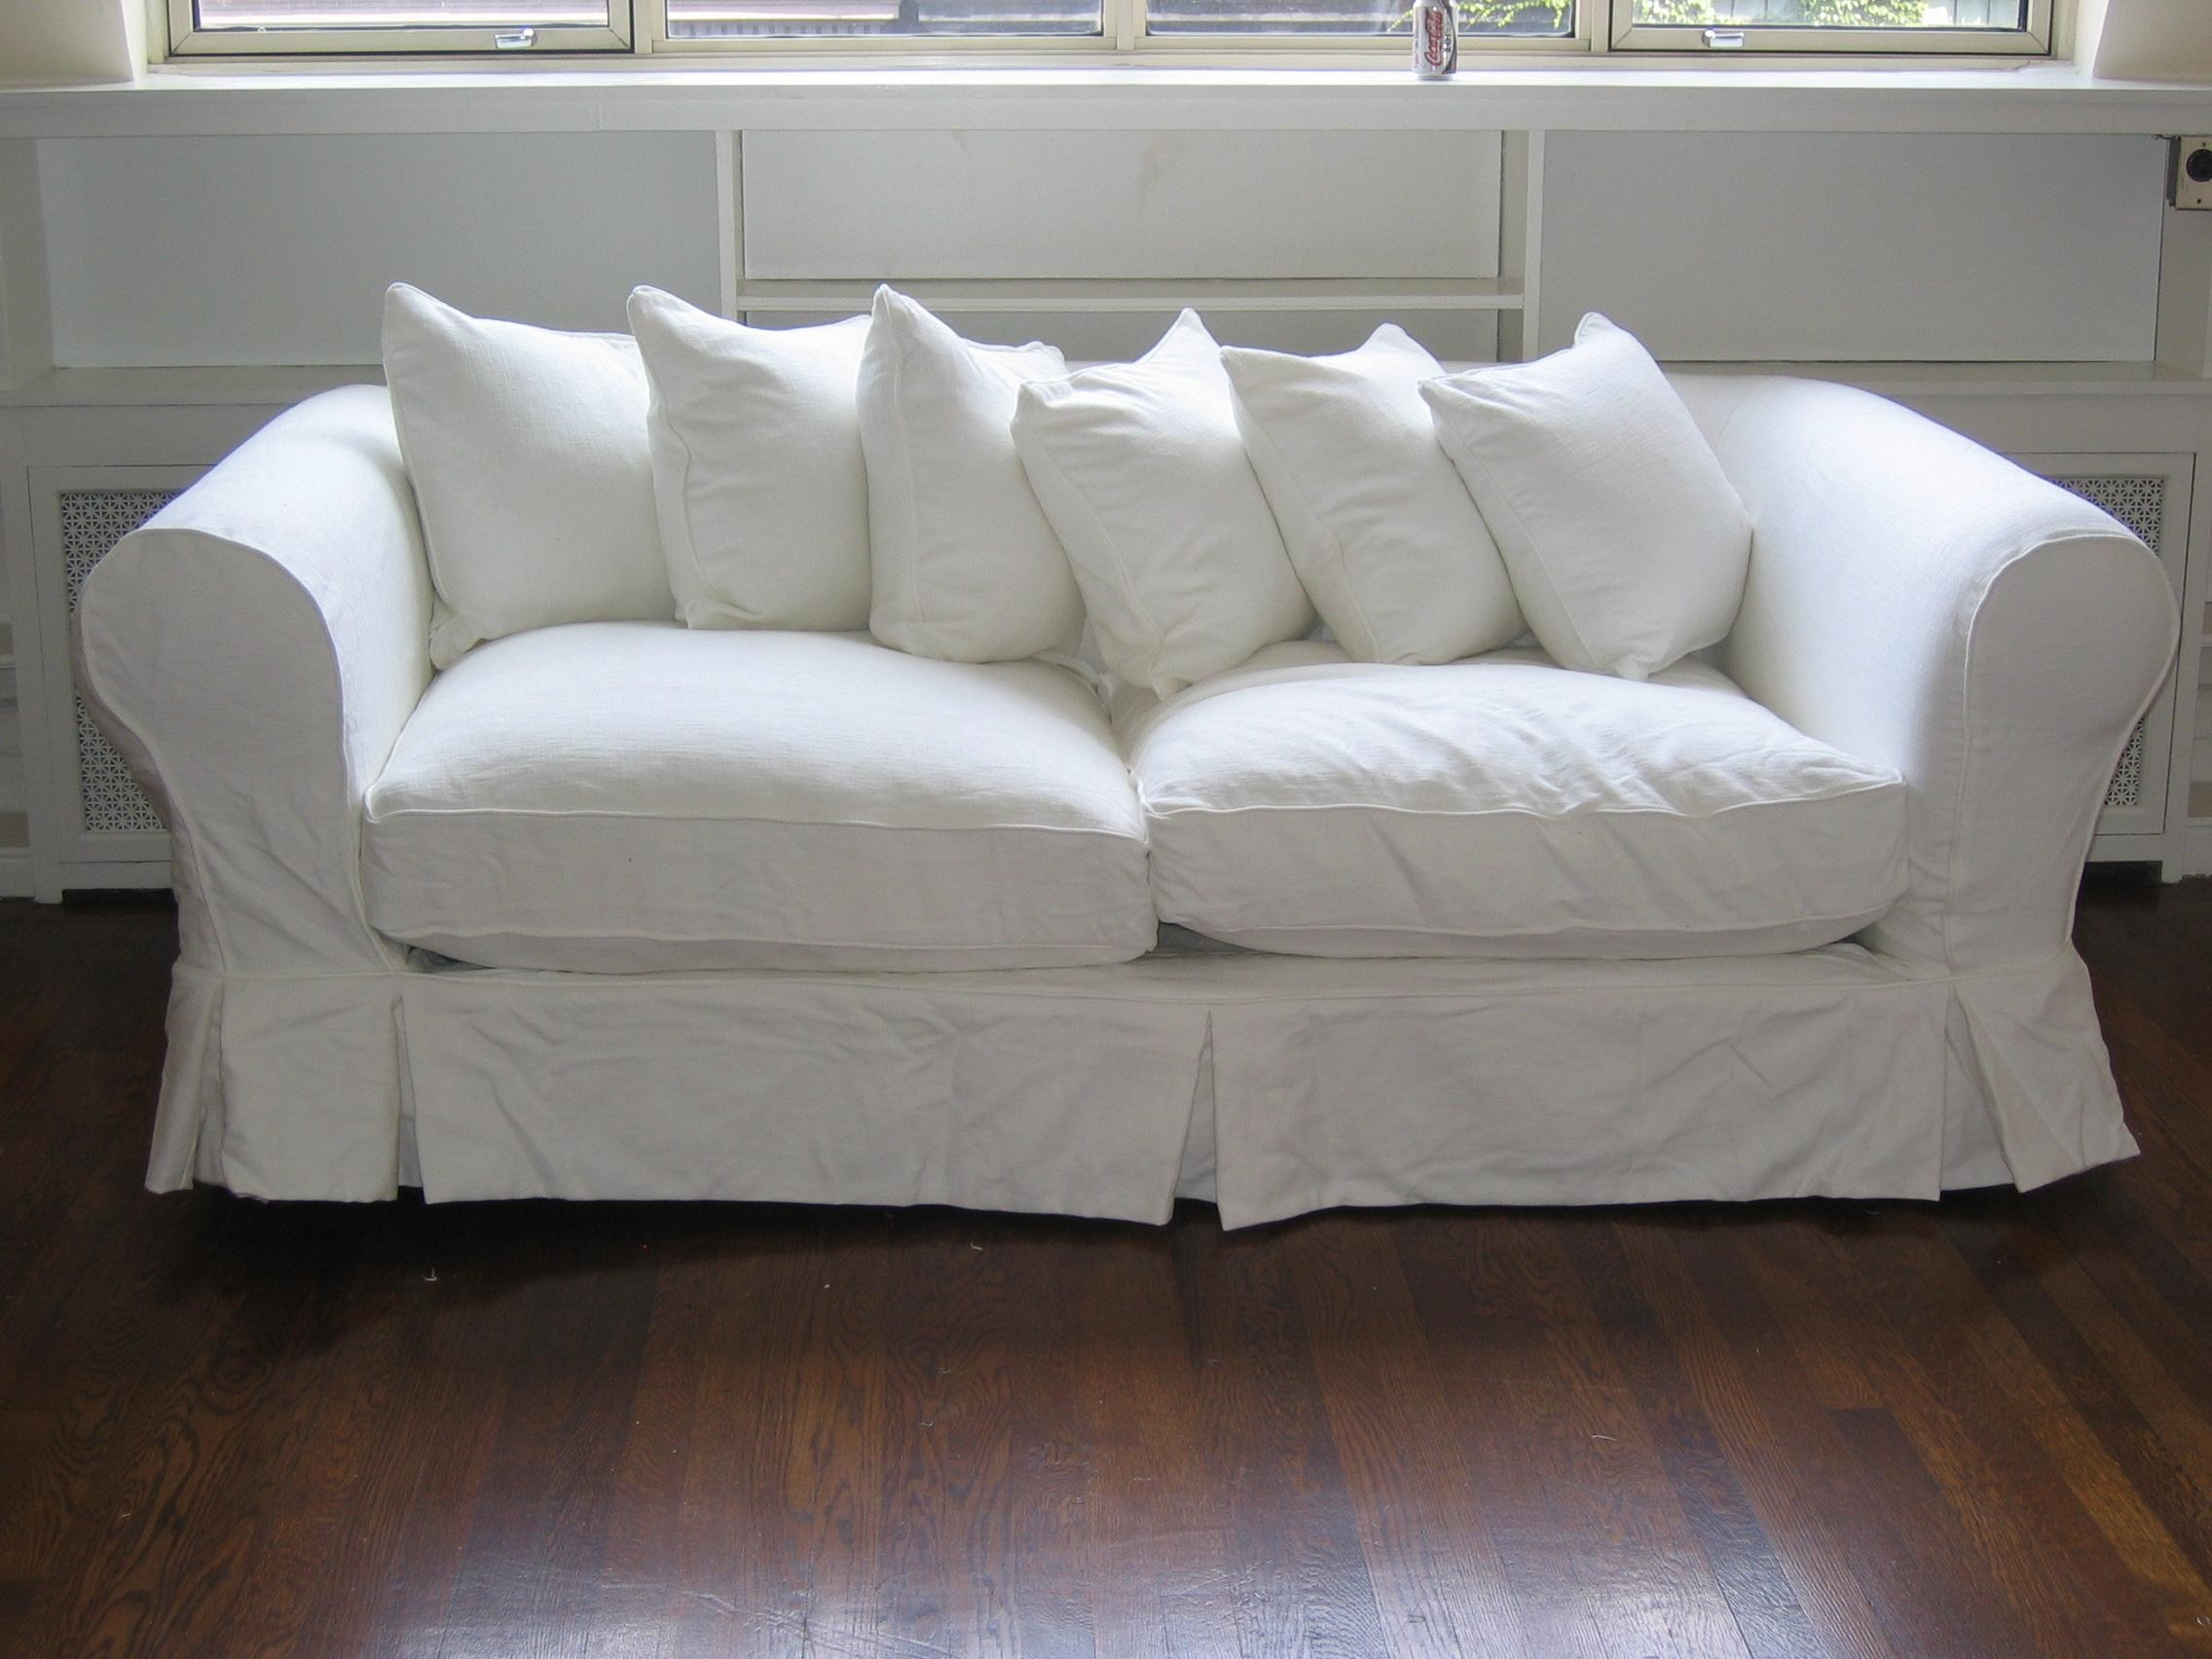 Good White Fabric Sofa 37 For Sofa Design Ideas With White Fabric Sofa With Regard To White Fabric Sofas (Image 9 of 20)